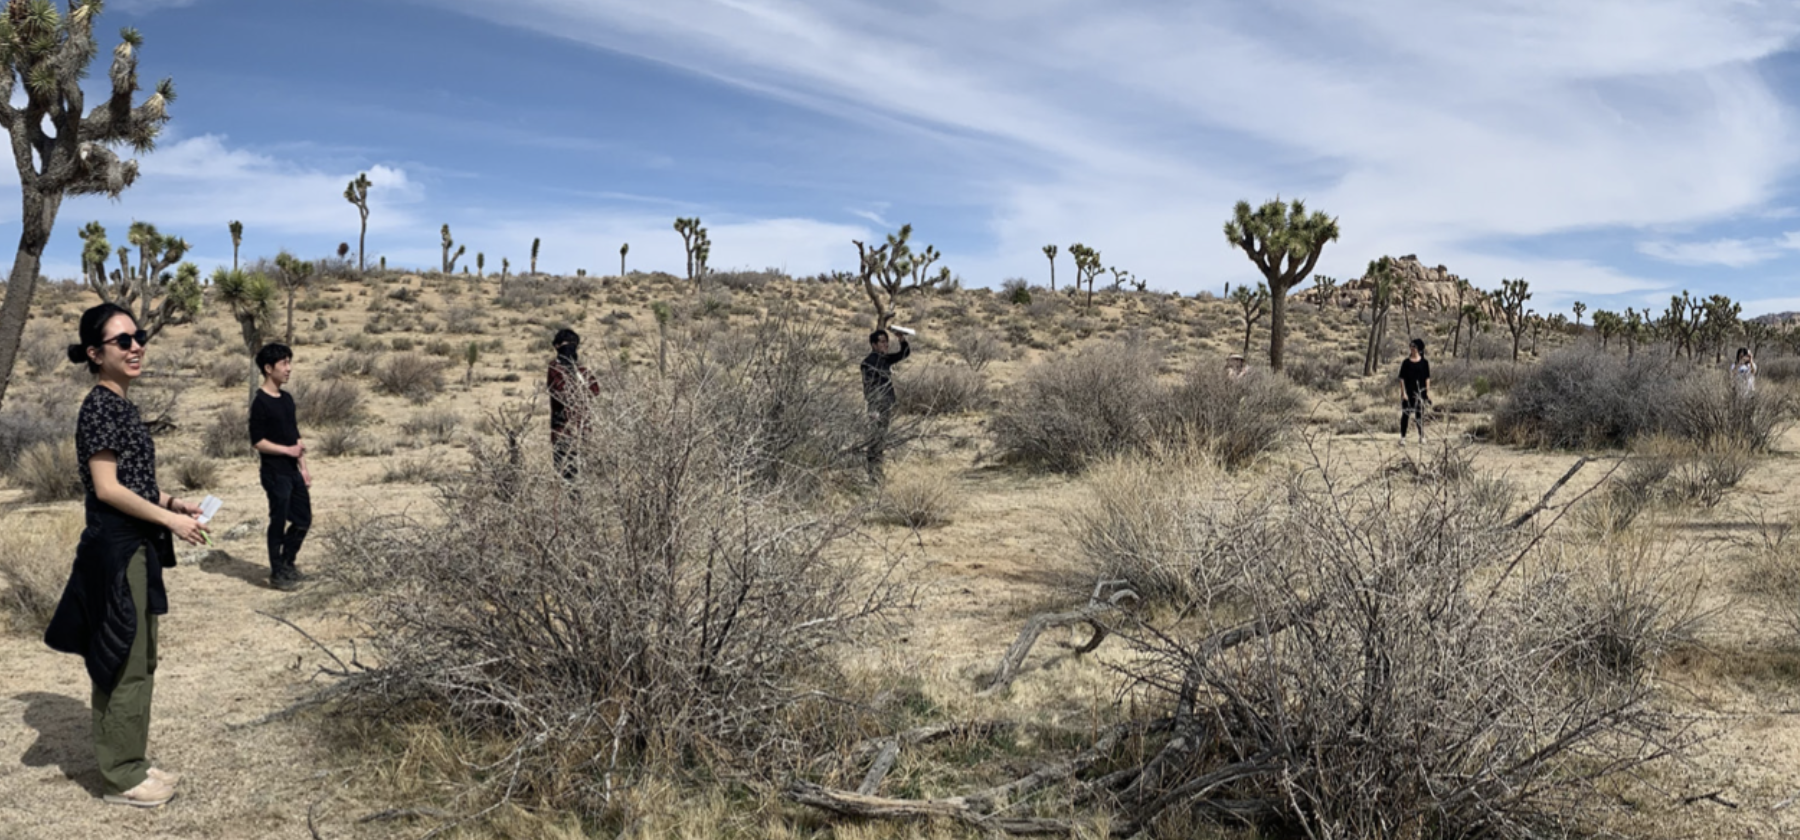 People standing in a desert with a cloudy blue sky above.